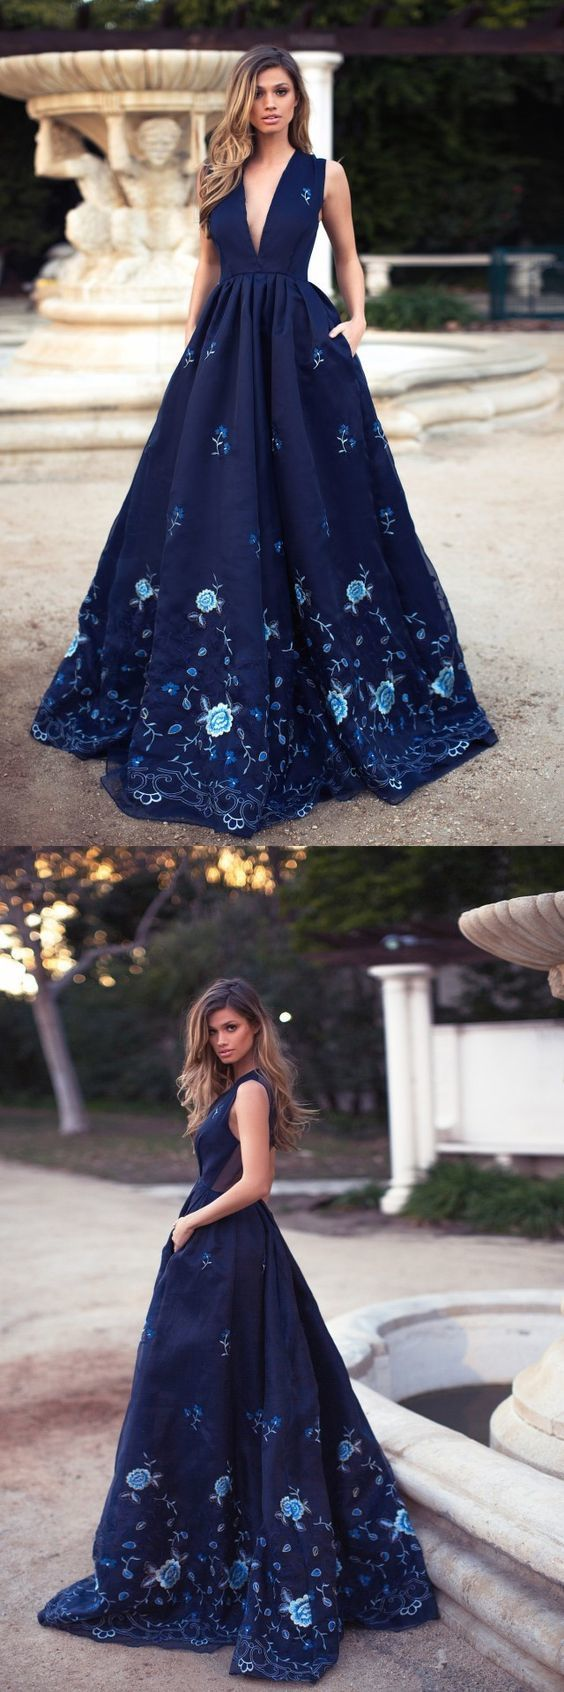 elegant navy plunging prom party dresses with special ppliques, fashion formal